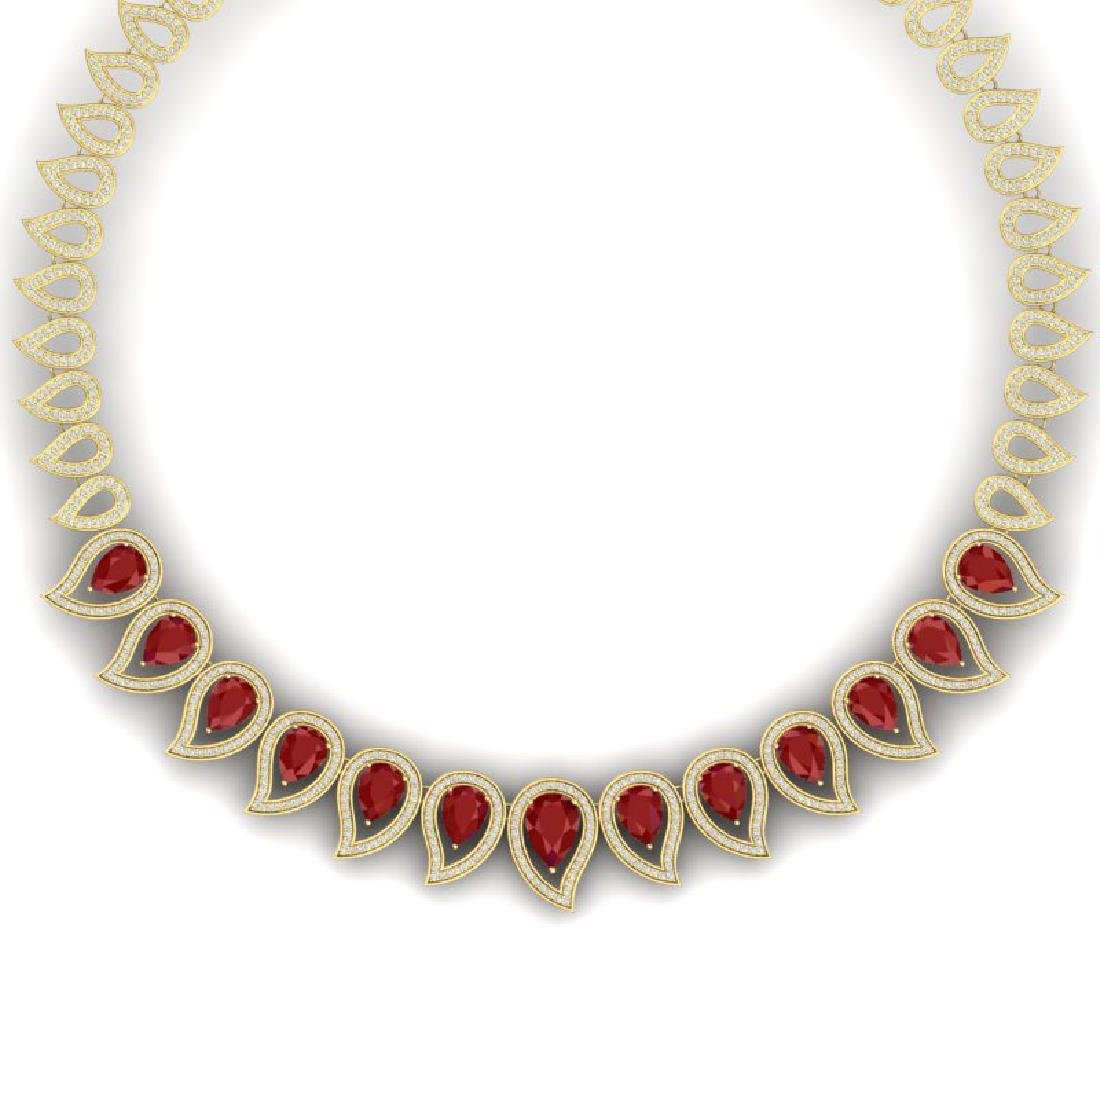 33.4 CTW Royalty Designer Ruby & VS Diamond Necklace